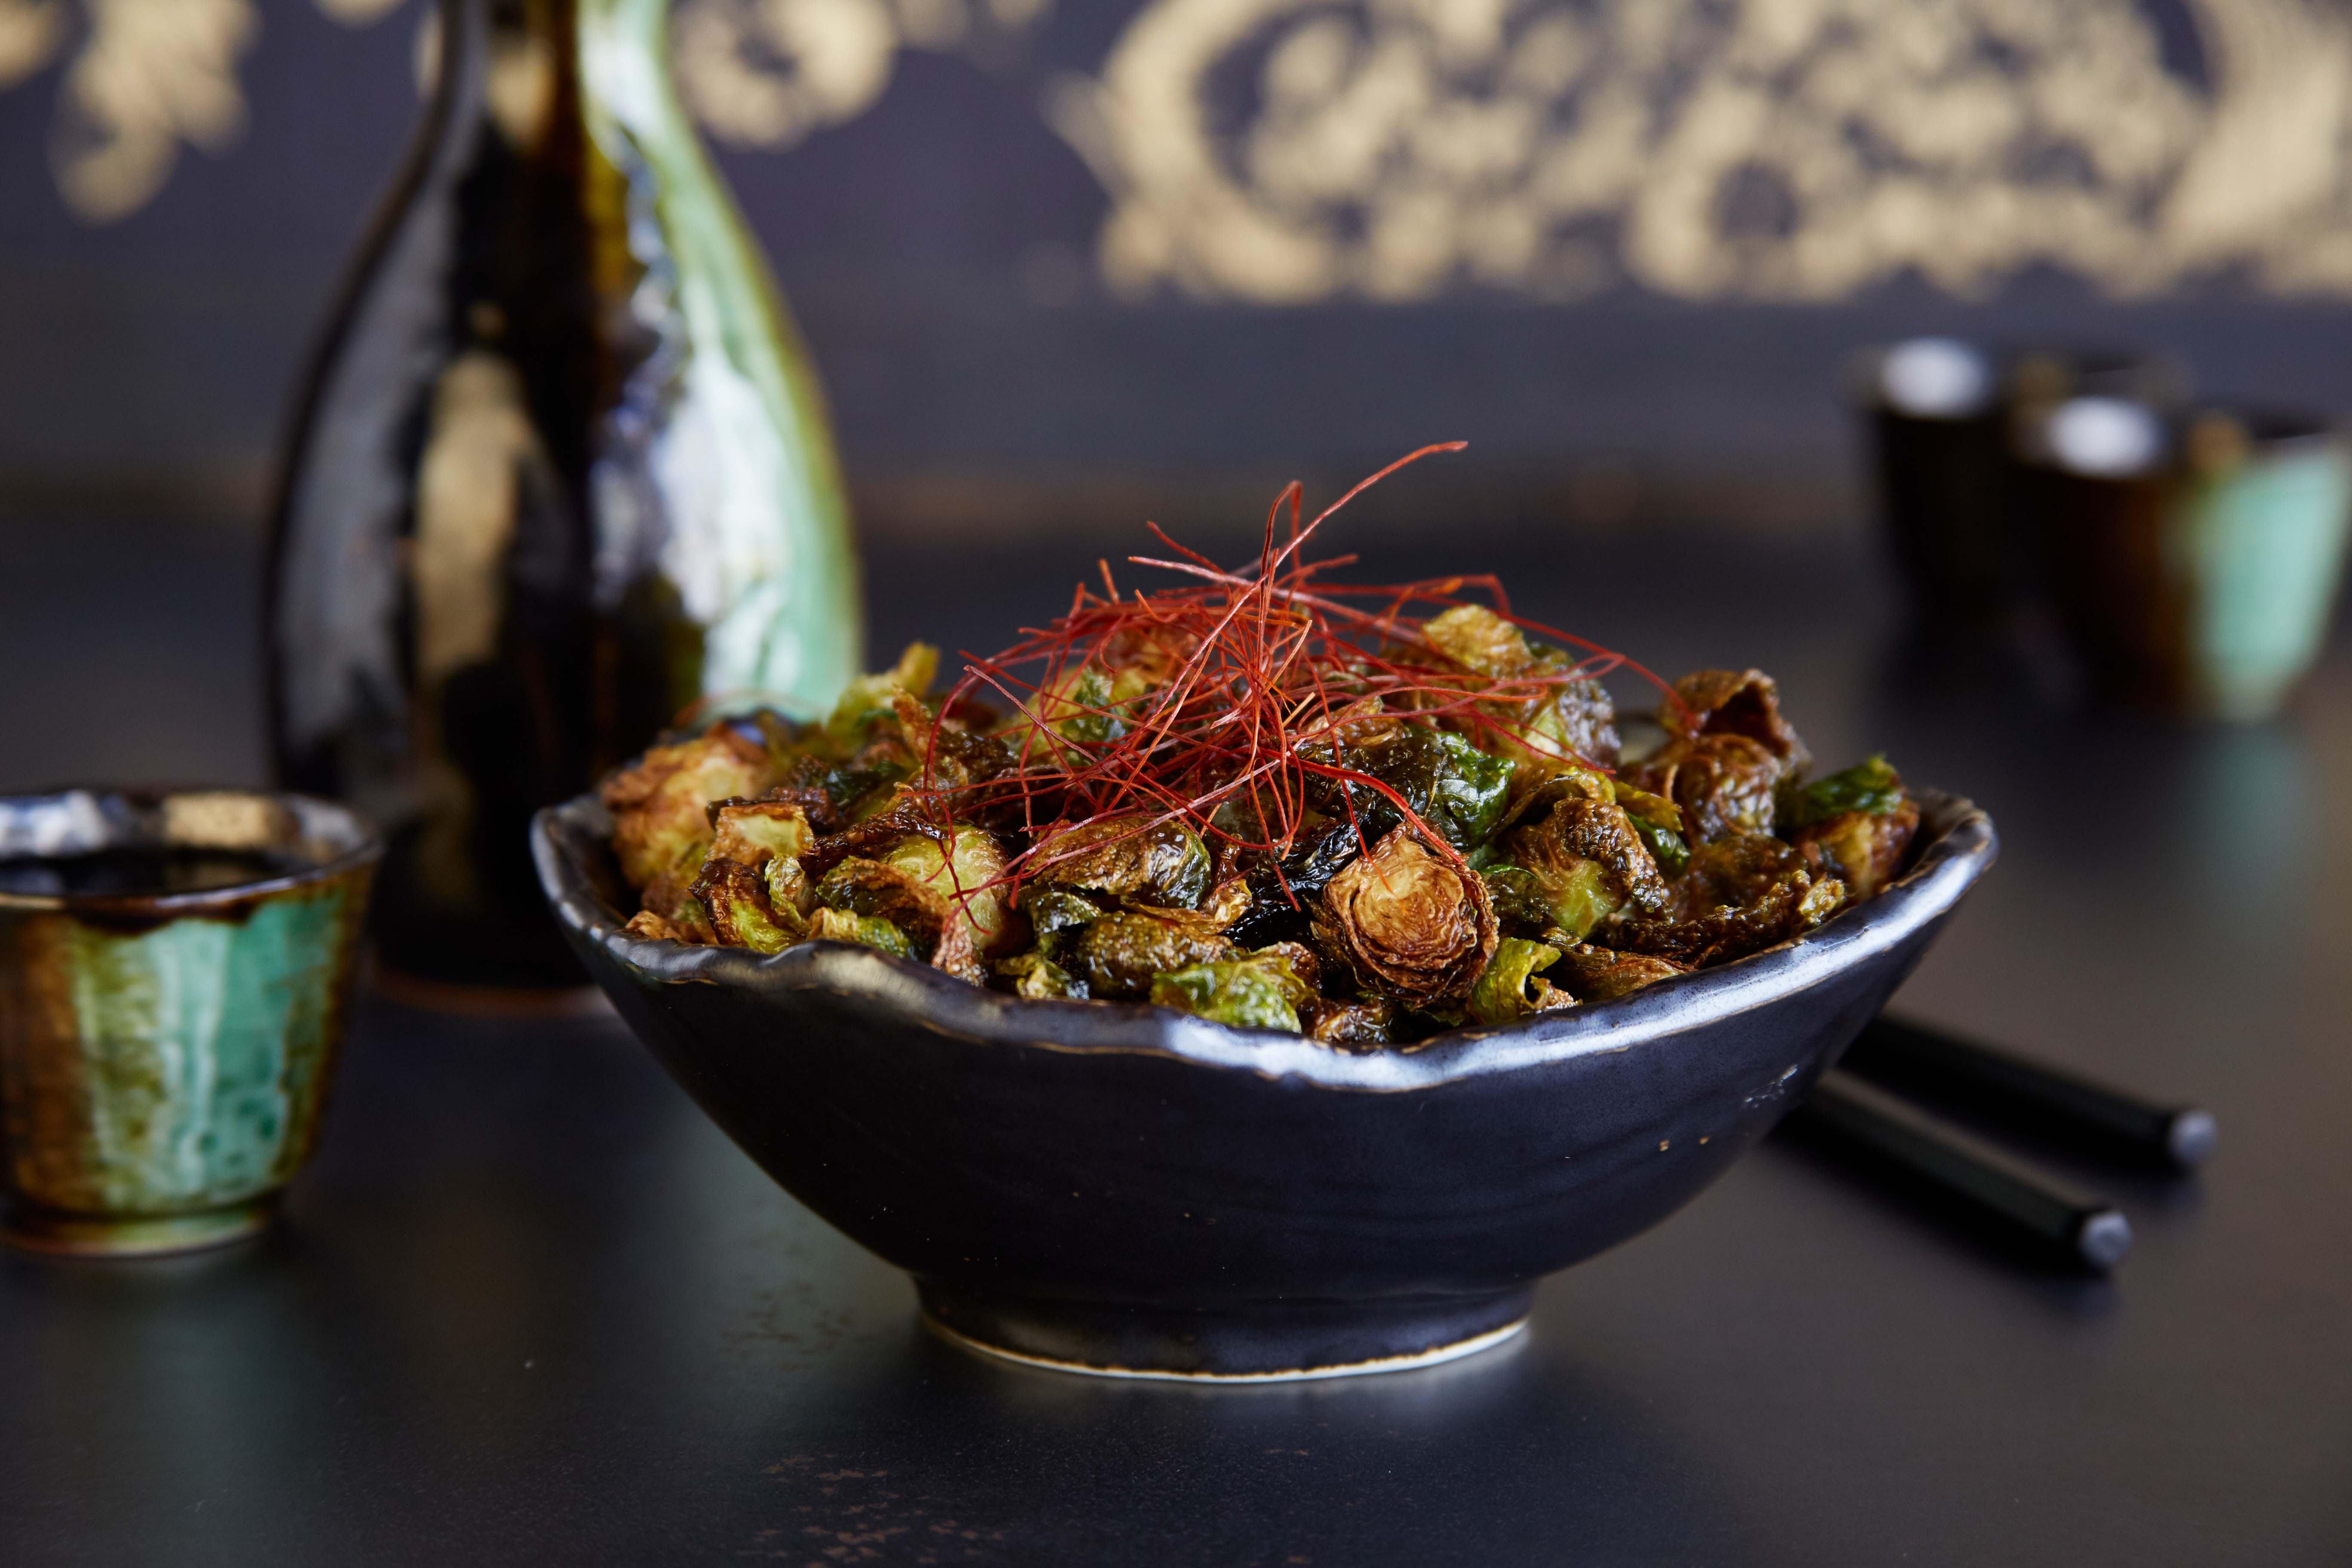 Hot & Sour Brussels Sprouts at Shu Shop